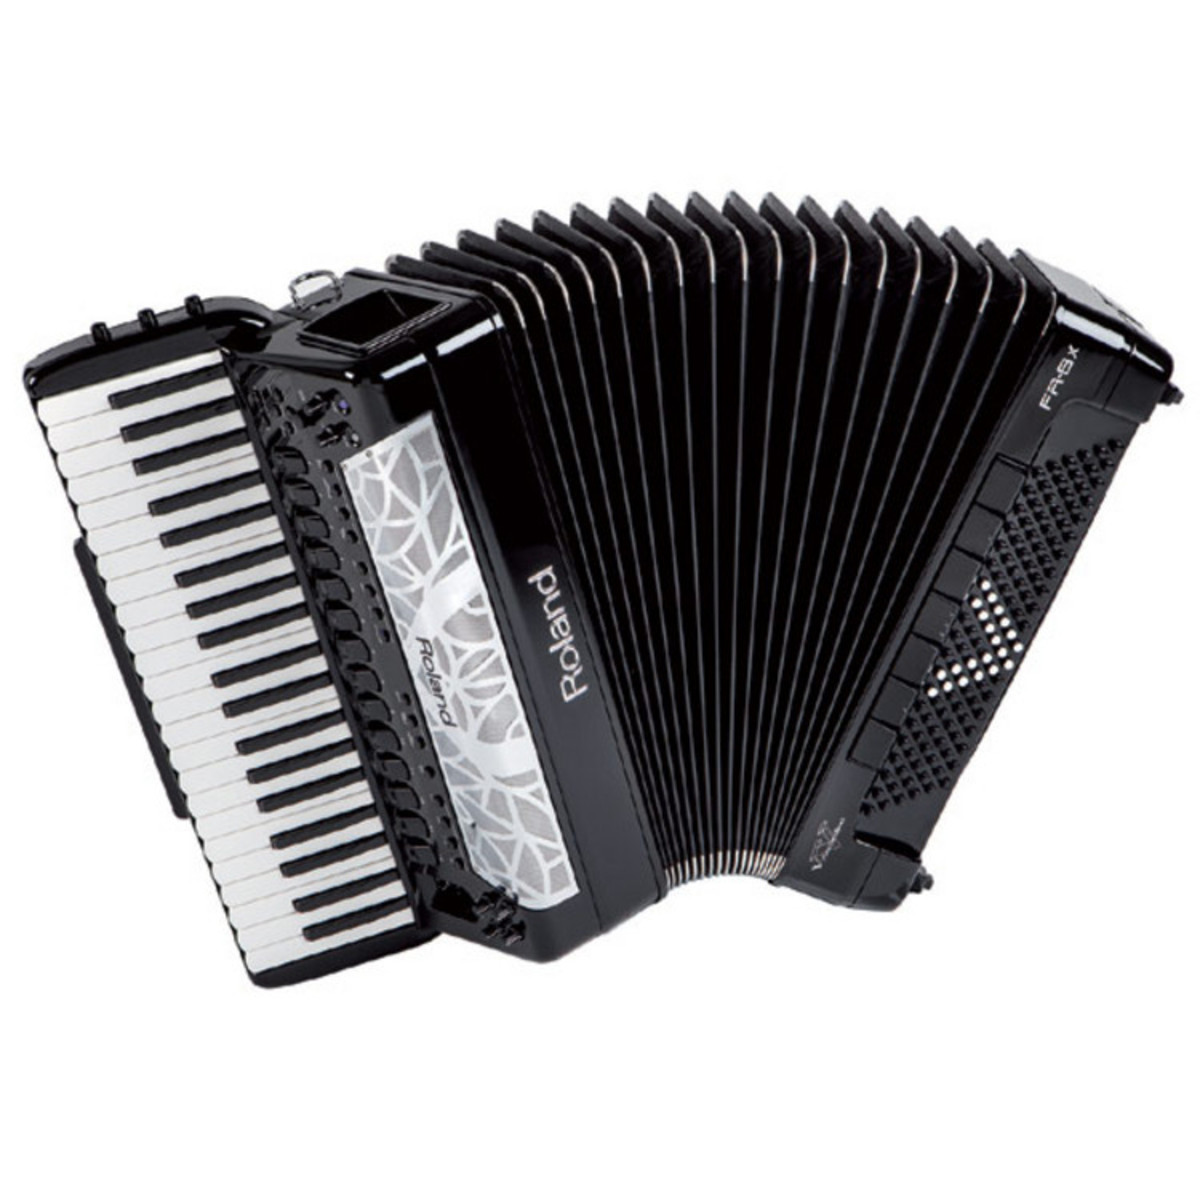 roland fr 8x v accordion piano type black nearly new at gear4music. Black Bedroom Furniture Sets. Home Design Ideas